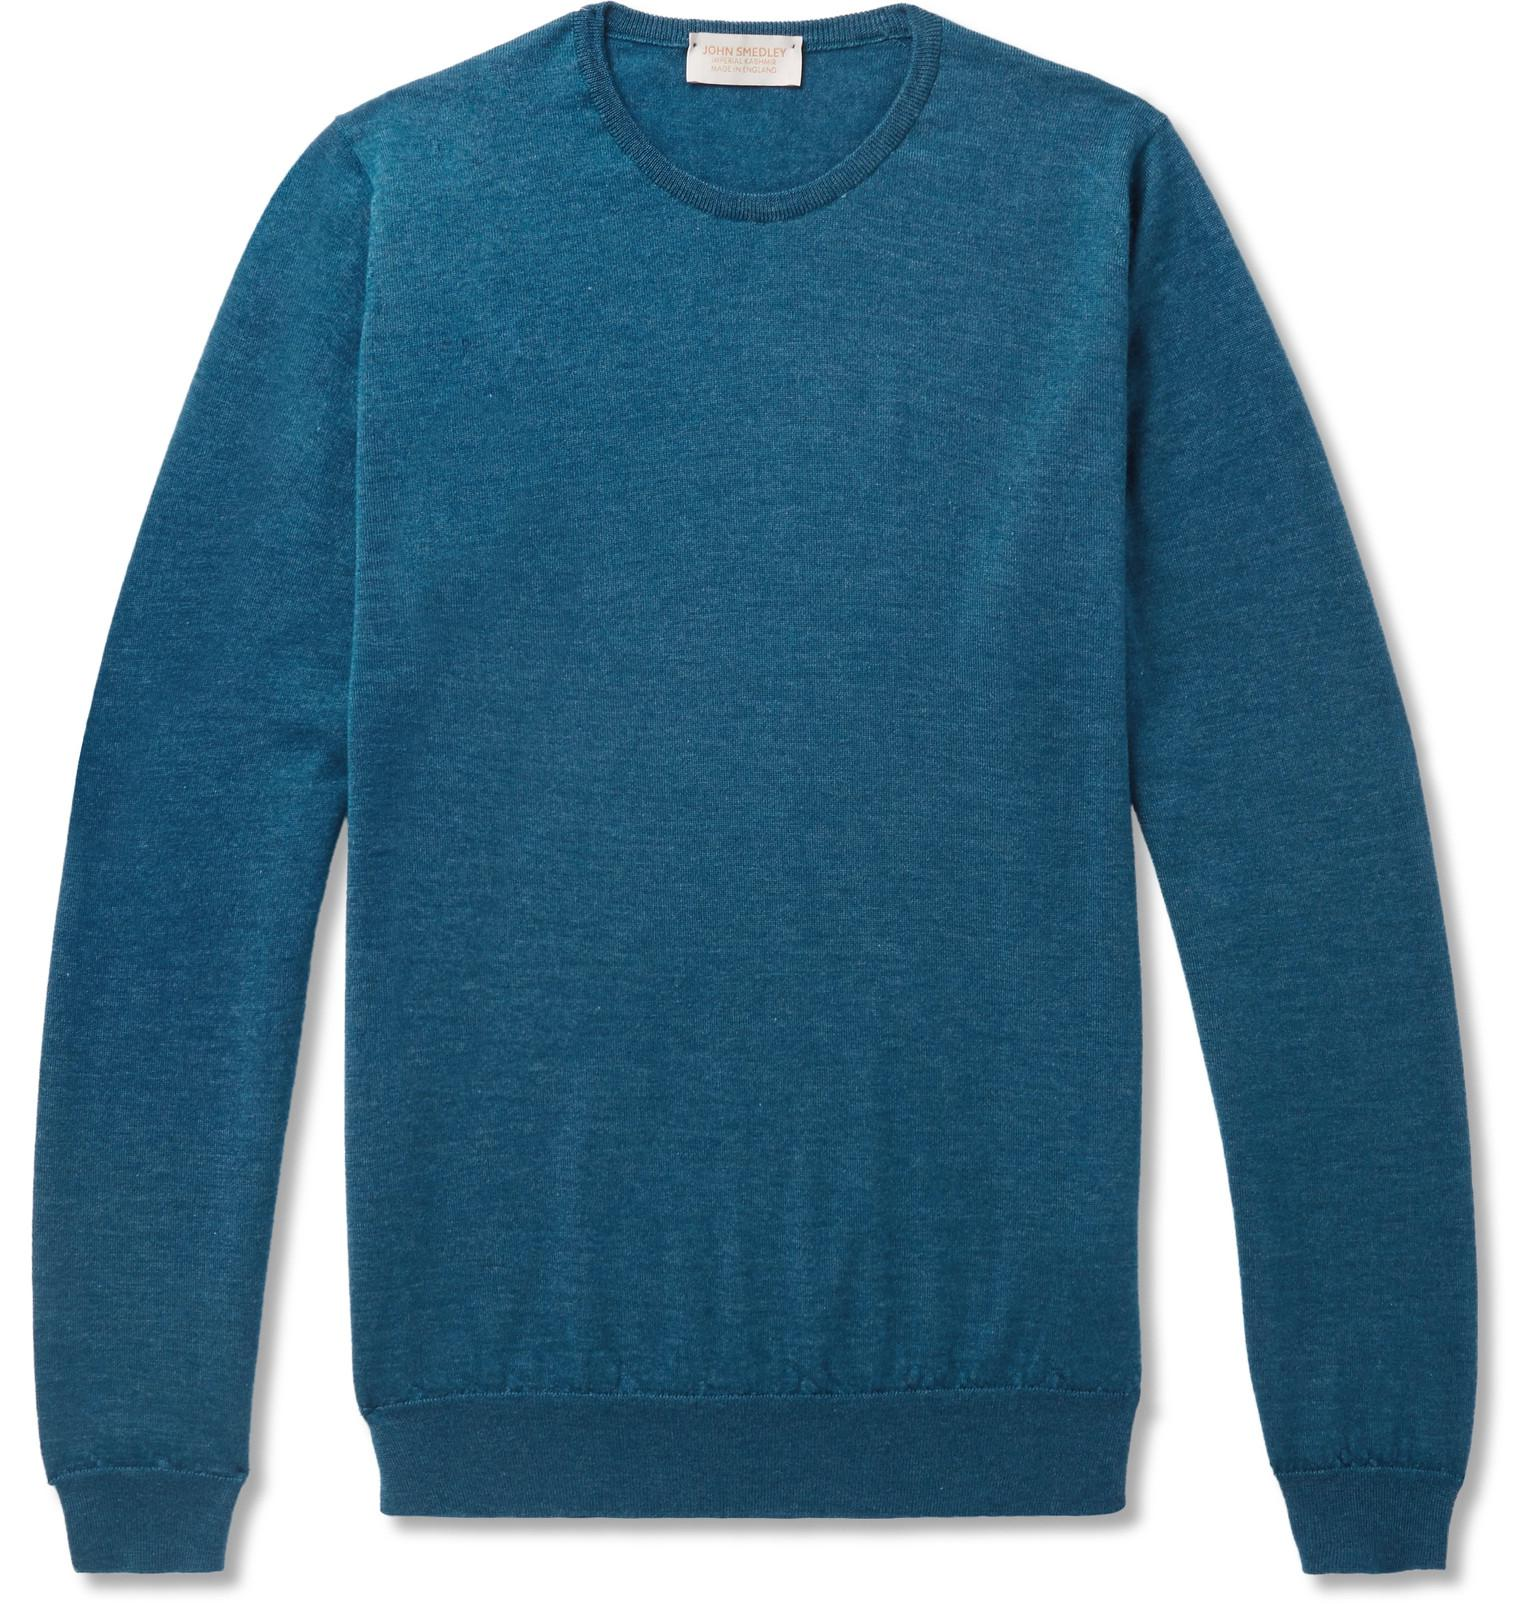 Outlet Largest Supplier Norland Slim-fit Mélange Cashmere And Silk-blend Sweater John Smedley Buy Cheap From China Finishline Online From China Sale Online y9fyJOVuNw